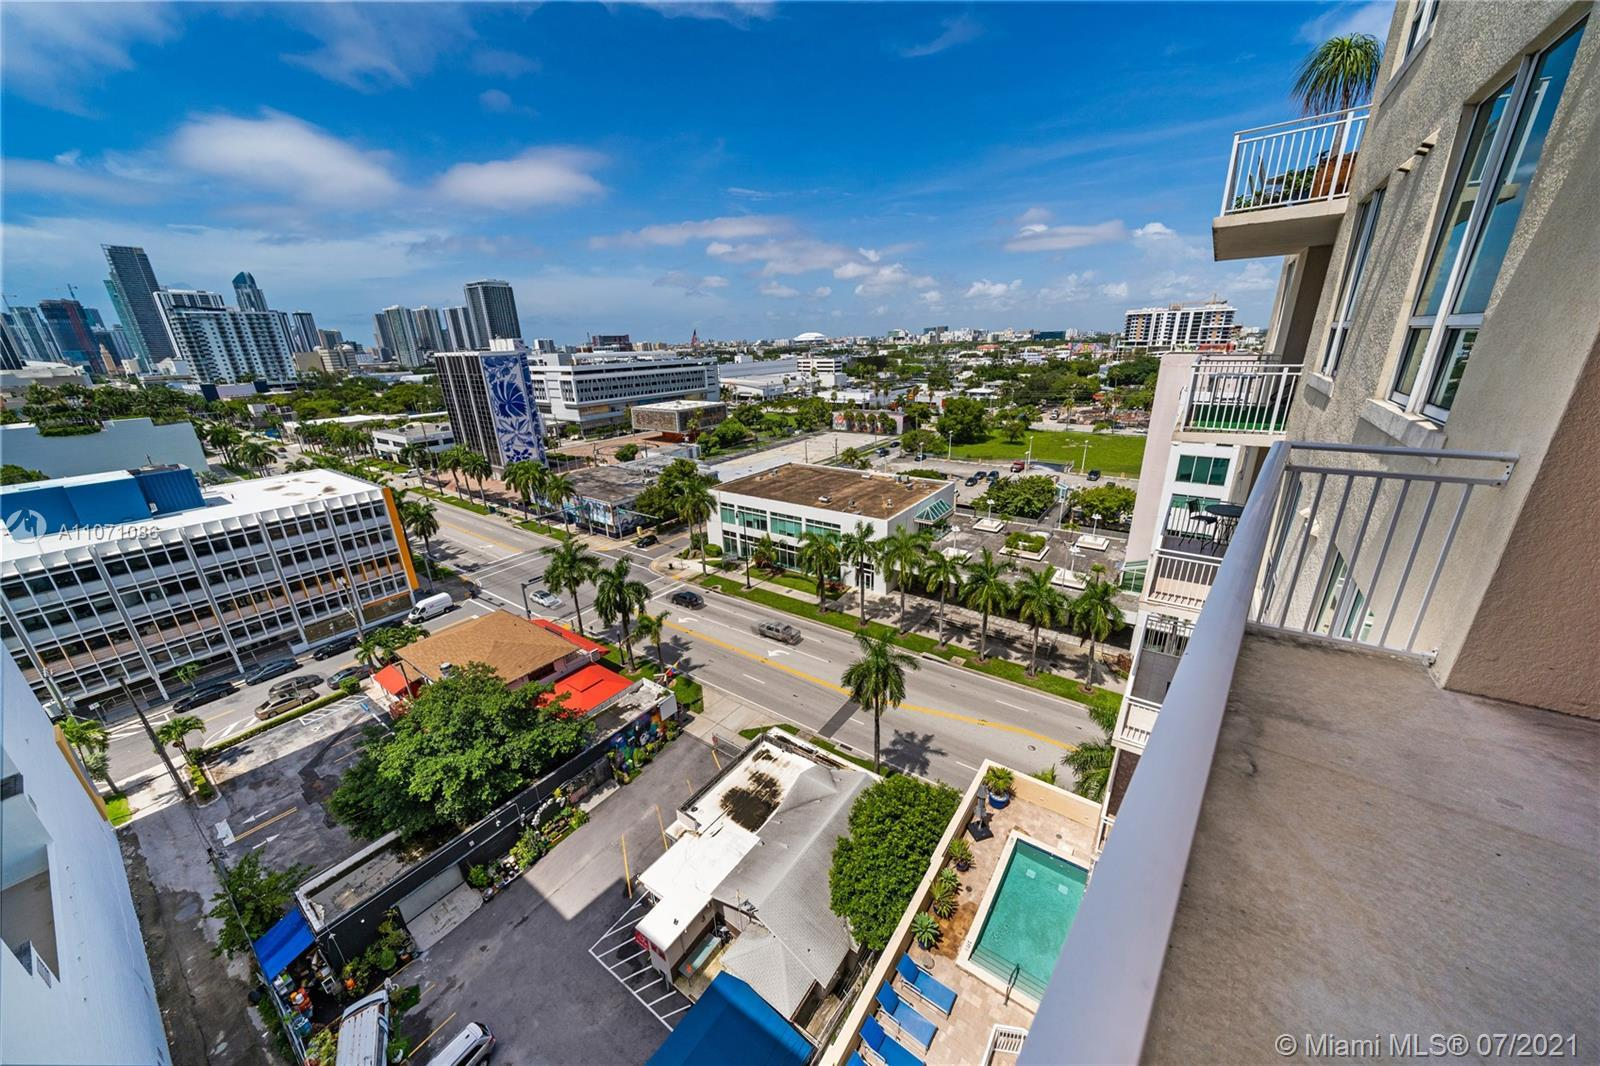 The penthouse of your dreams can be yours in the heart of Edgewater. Uptown Lofts provides the disce